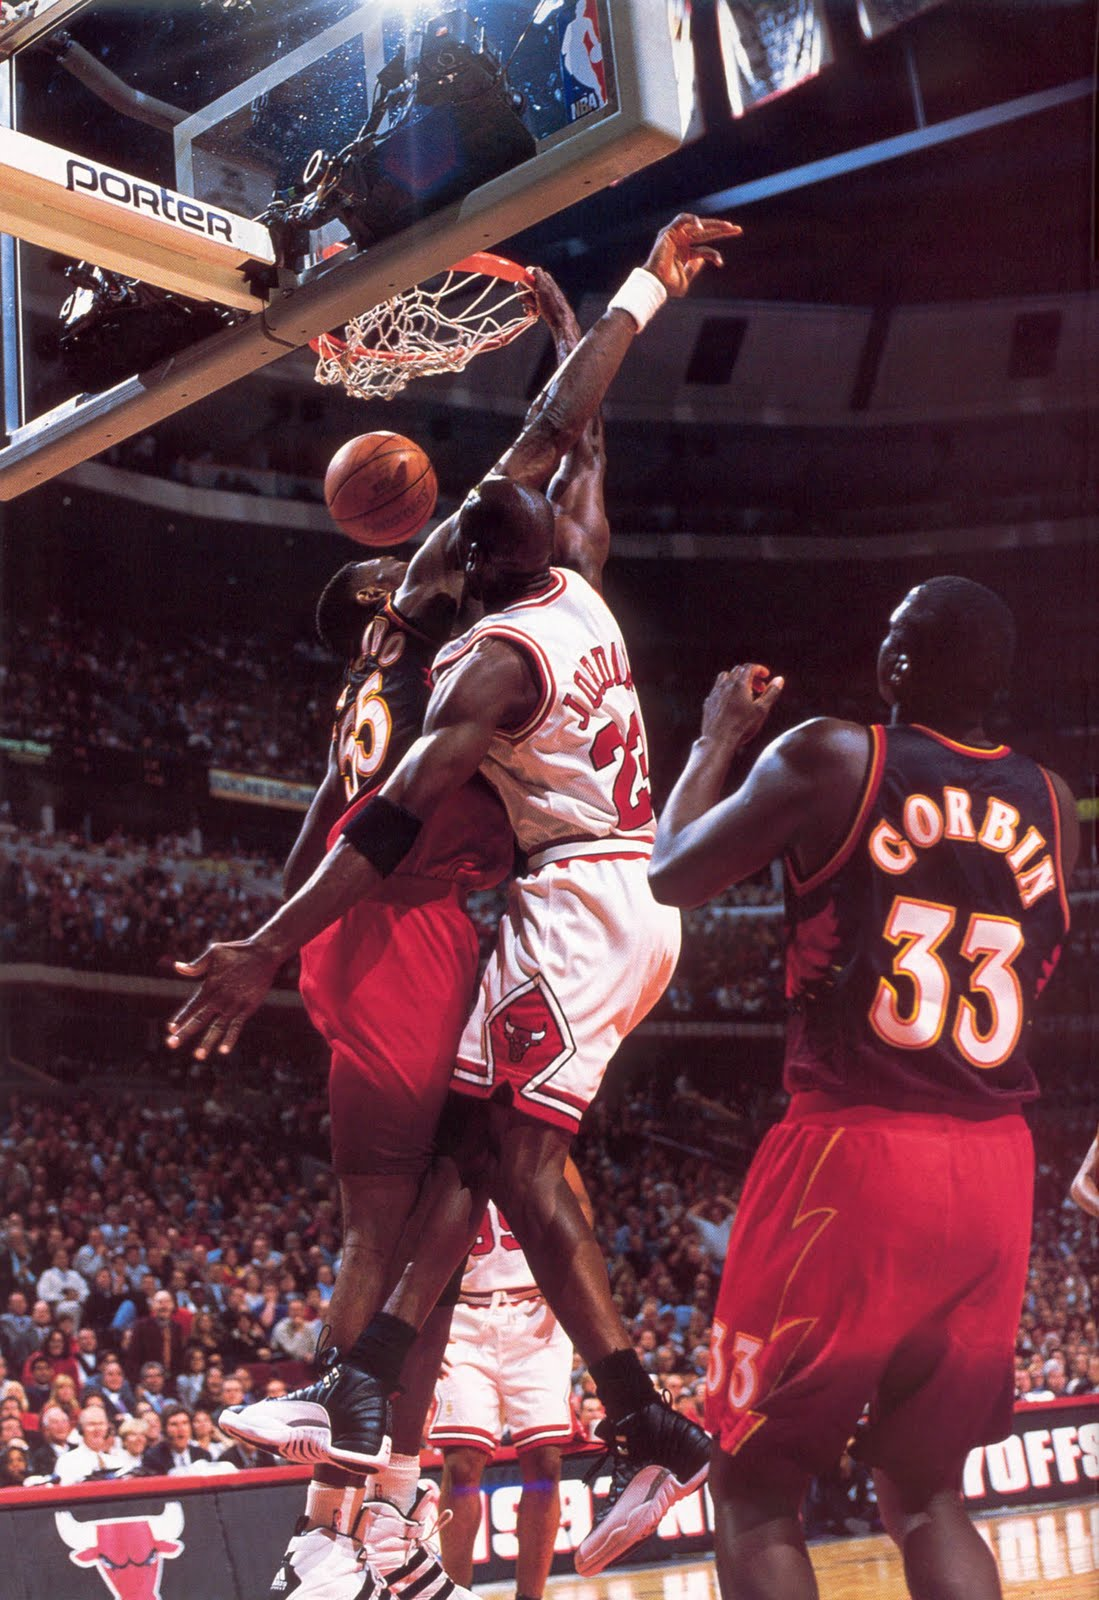 The Nba Dribbled Out Dikembe Mutombo Was Not Wagging His Finger In